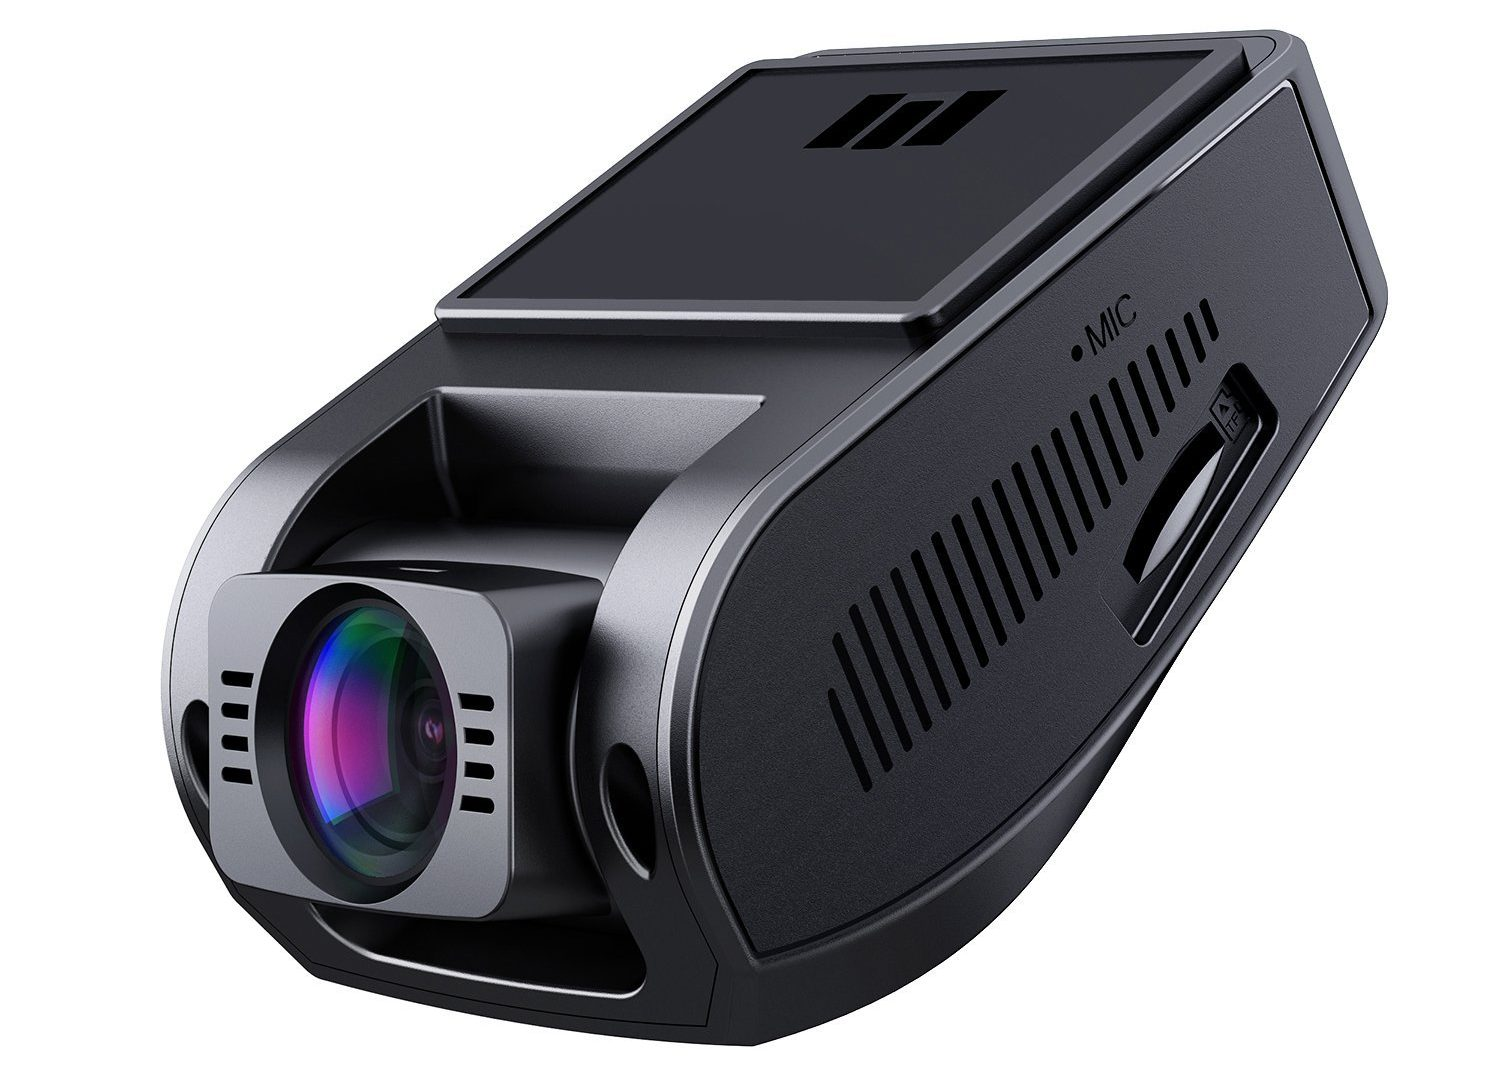 Sconto AUKEY Dash Cam 1080p, meno 20 euro su Amazon